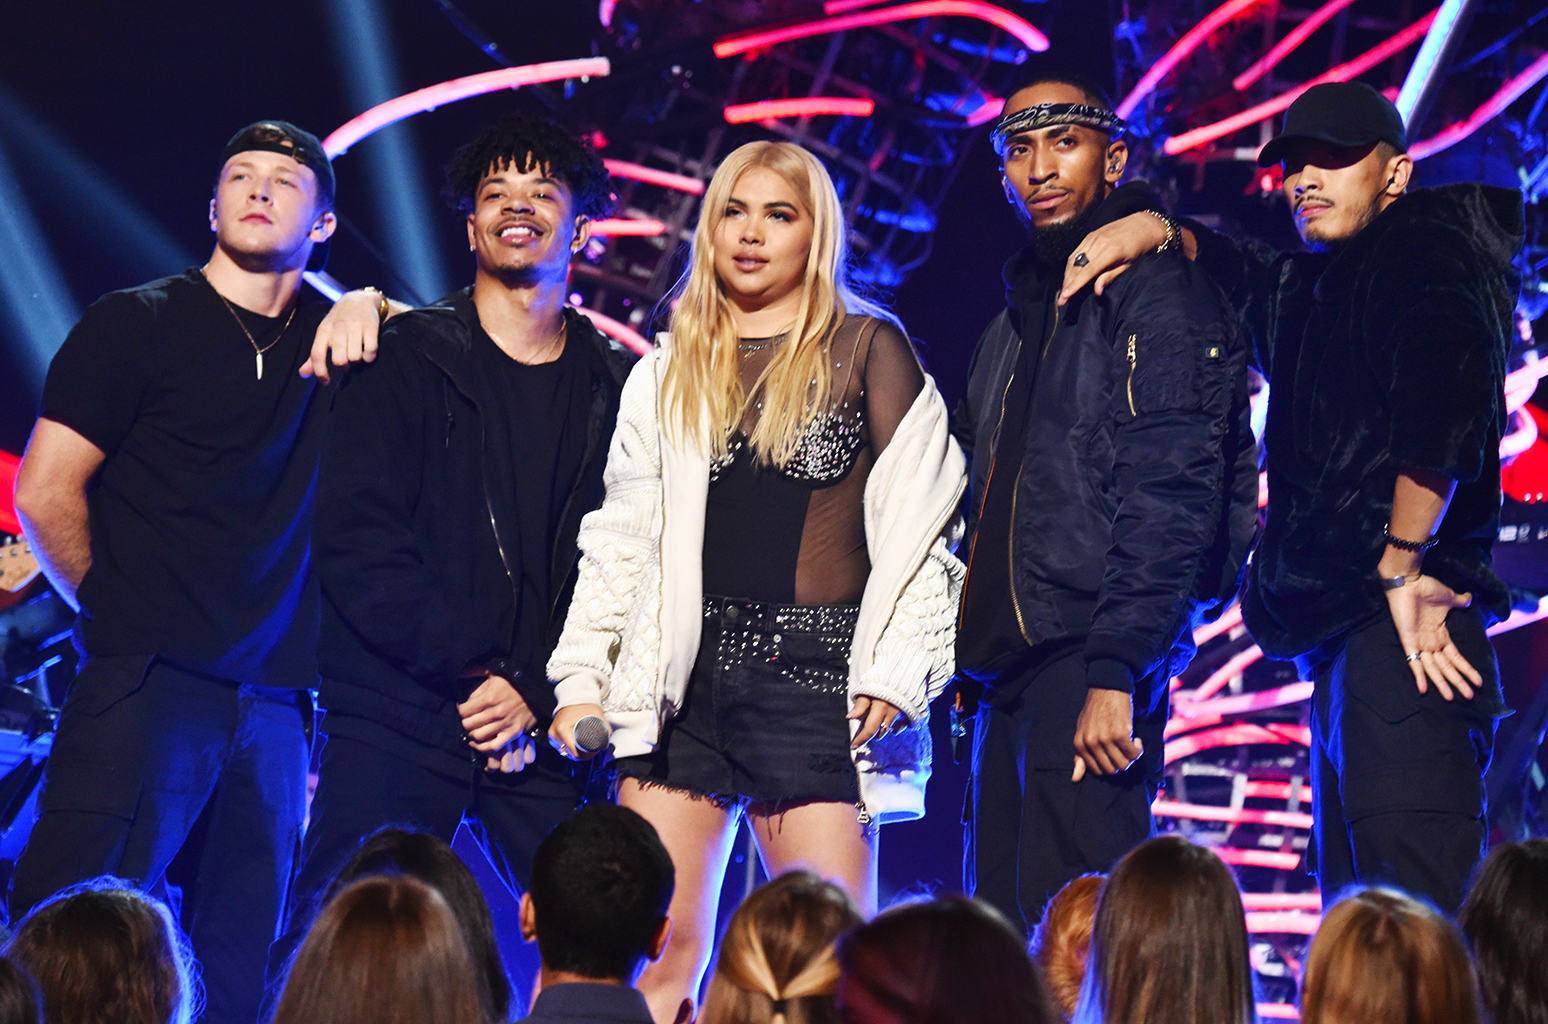 hayley-kiyoko-live-mtv-vmas-show-aug-20-2018-billboard-1548.jpg